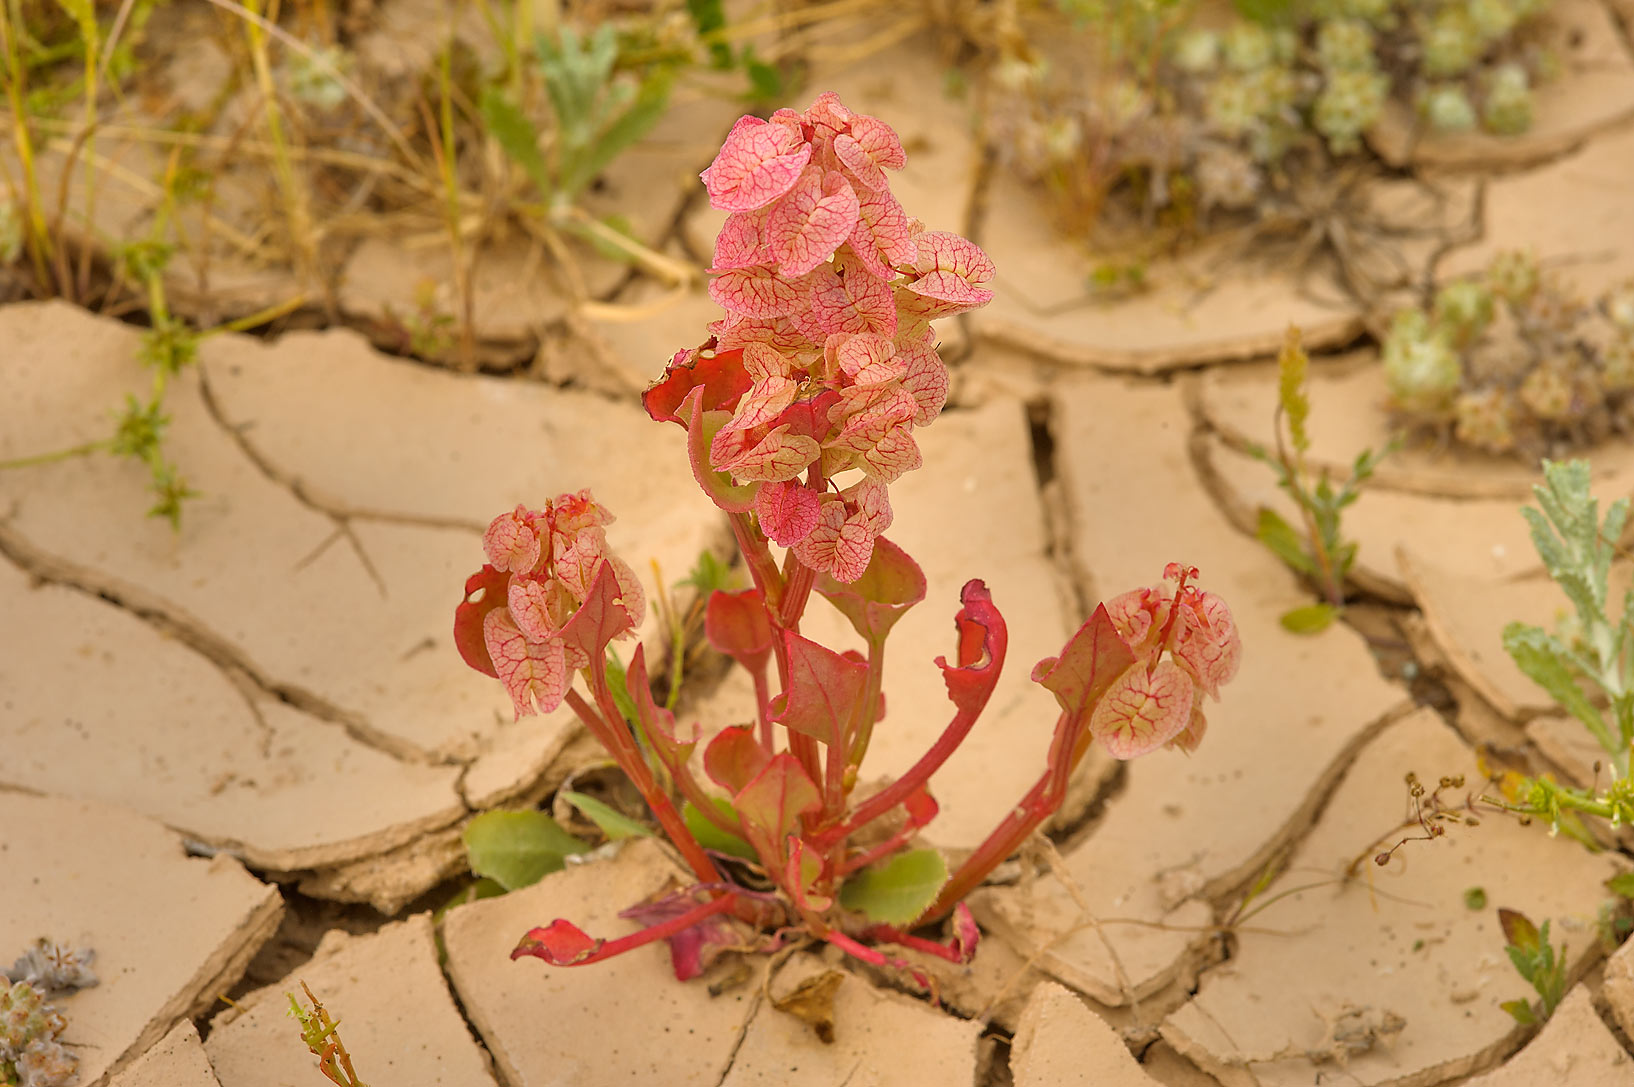 Bladder dock (Rumex vesicarius, local name...near Ras Laffan. Northern Qatar